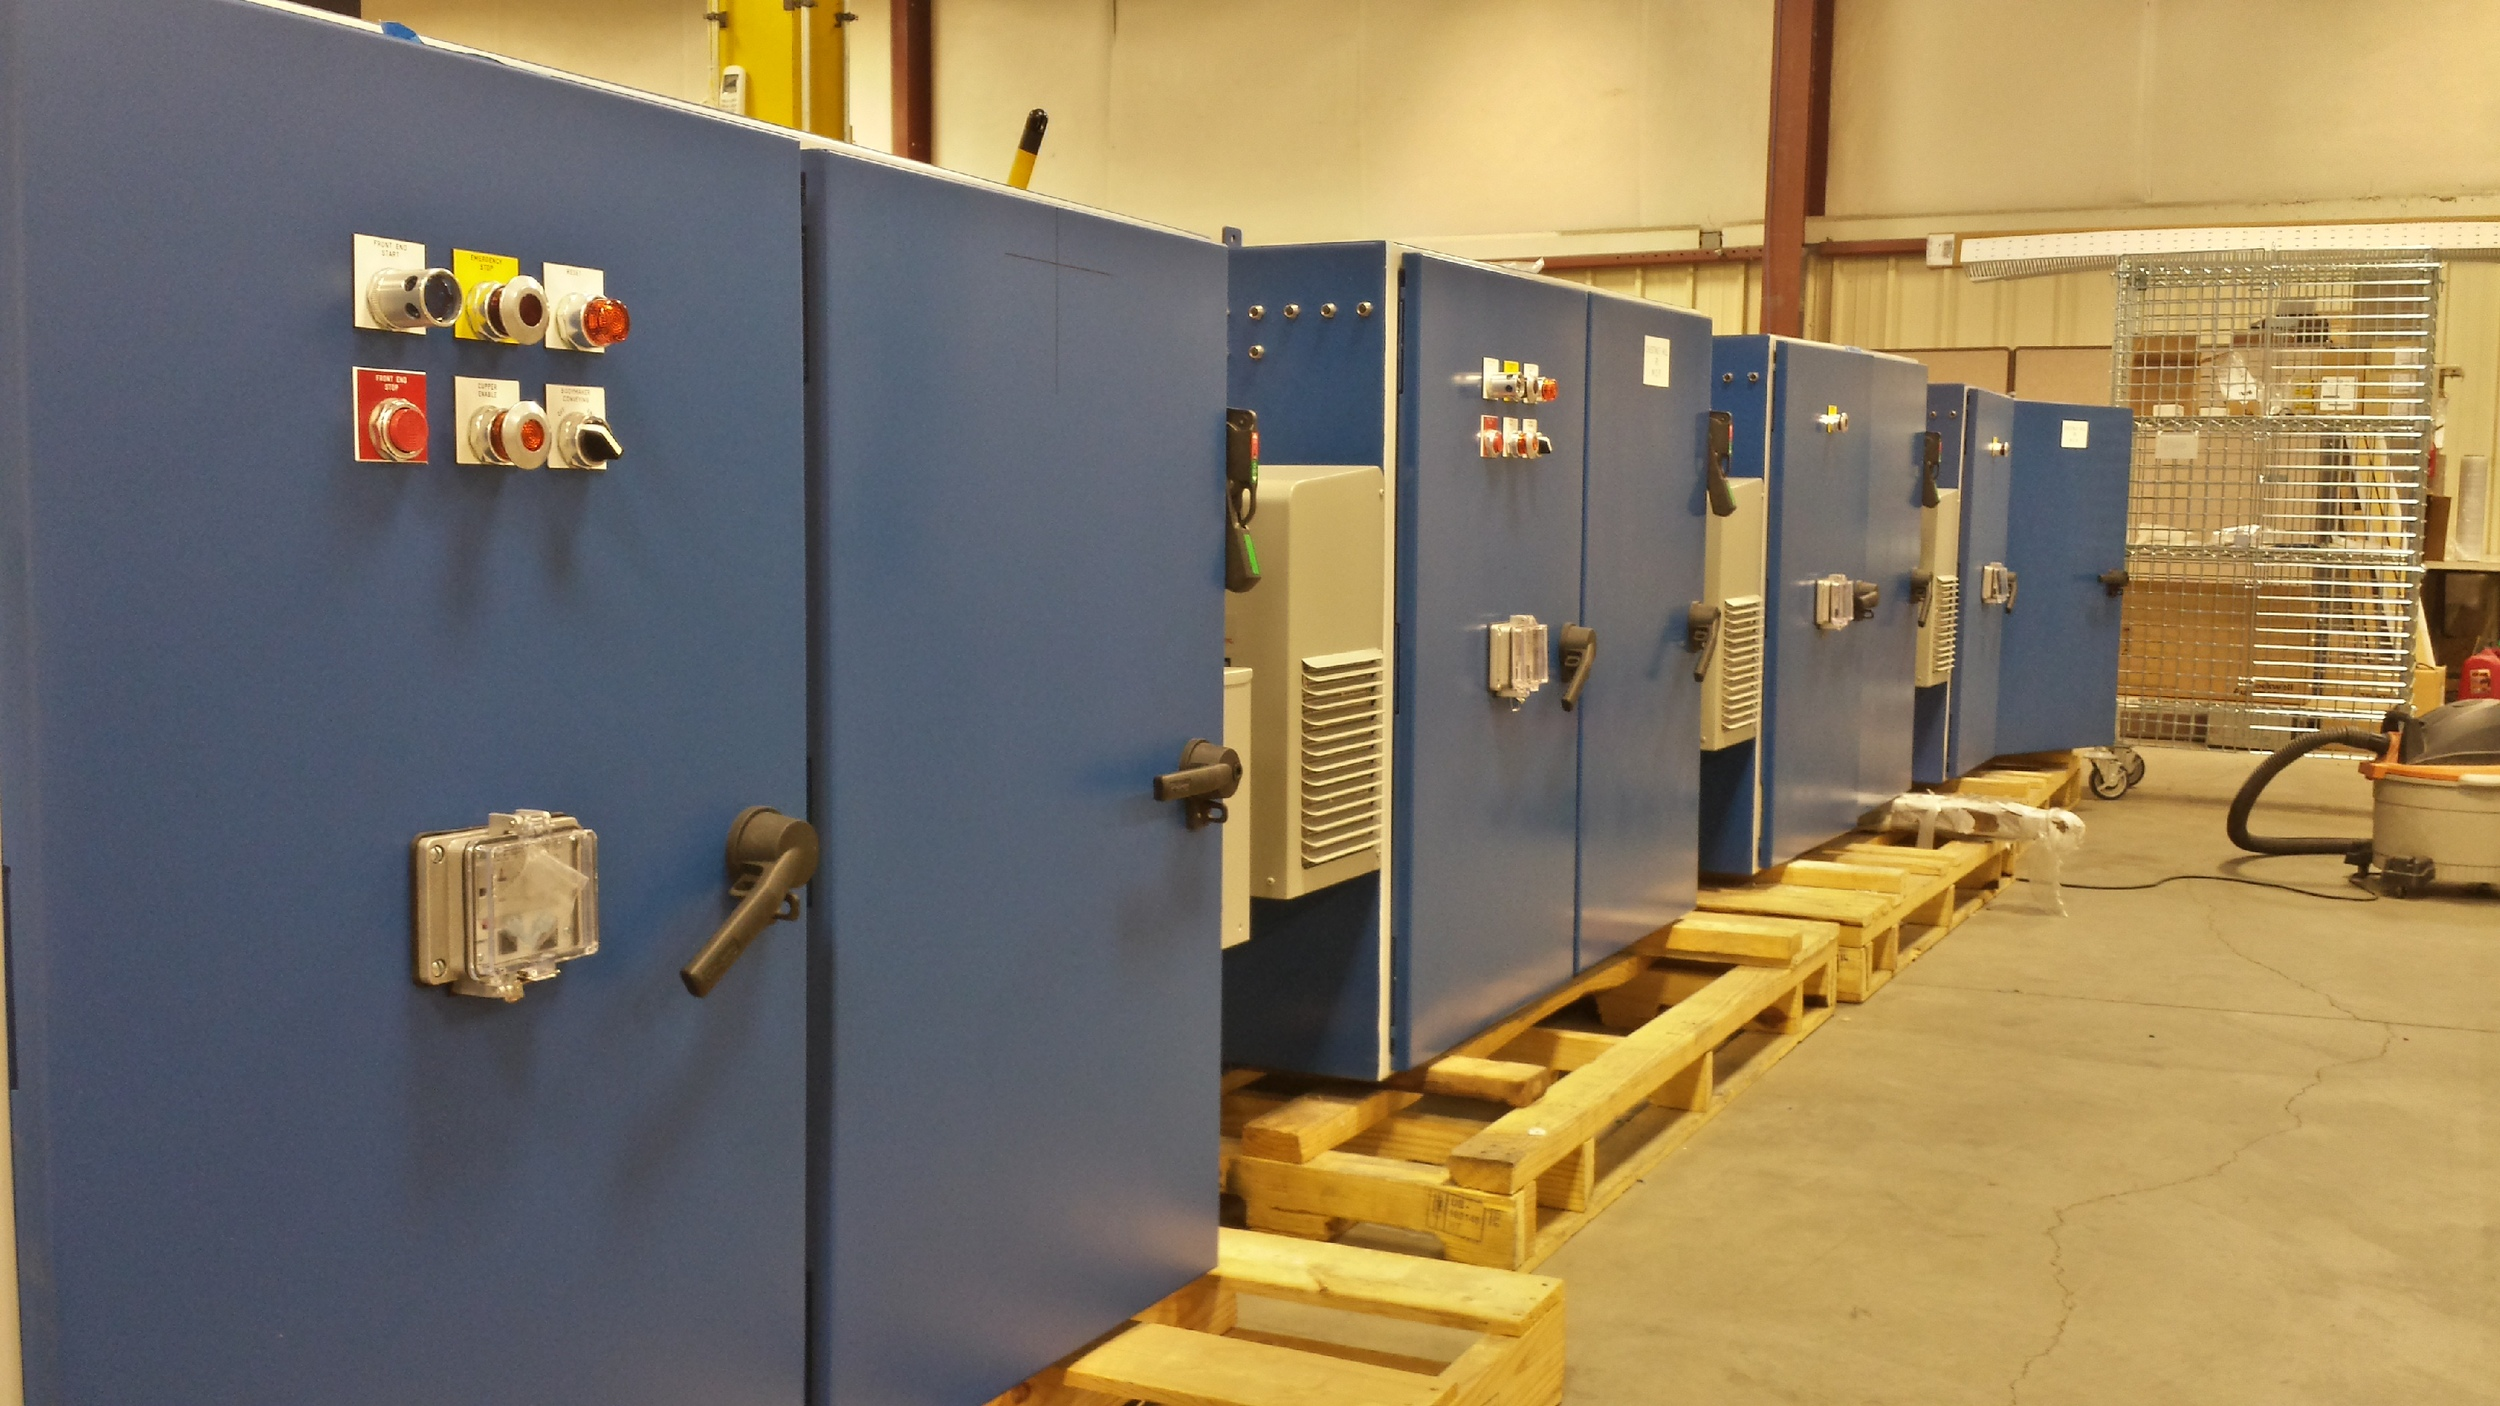 Also designed and built for Ball Packaging, these panels are headed to Chestnut Hill, TN.